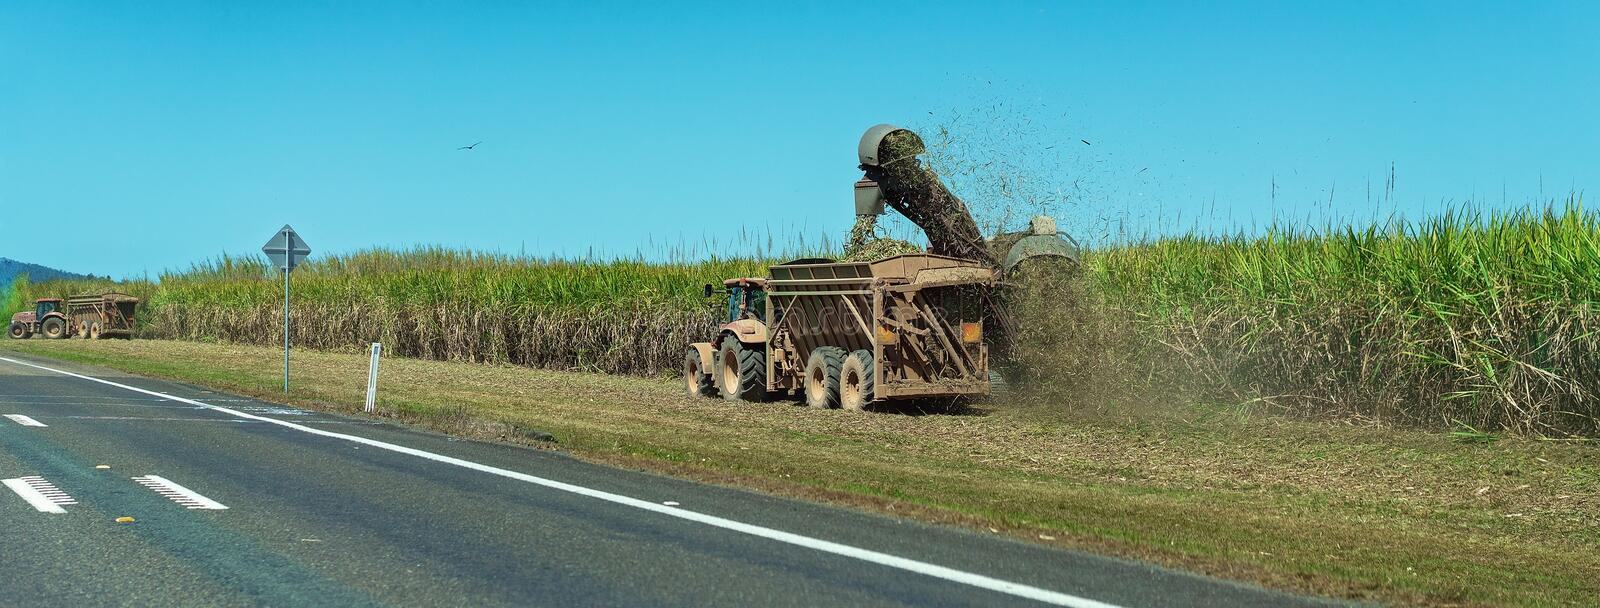 Sugar Cane Harvesting Beside A Busy Highway. A cane harvester cutting sugar cane by the roadside and a tractor carting the crop to the refinery stock photo